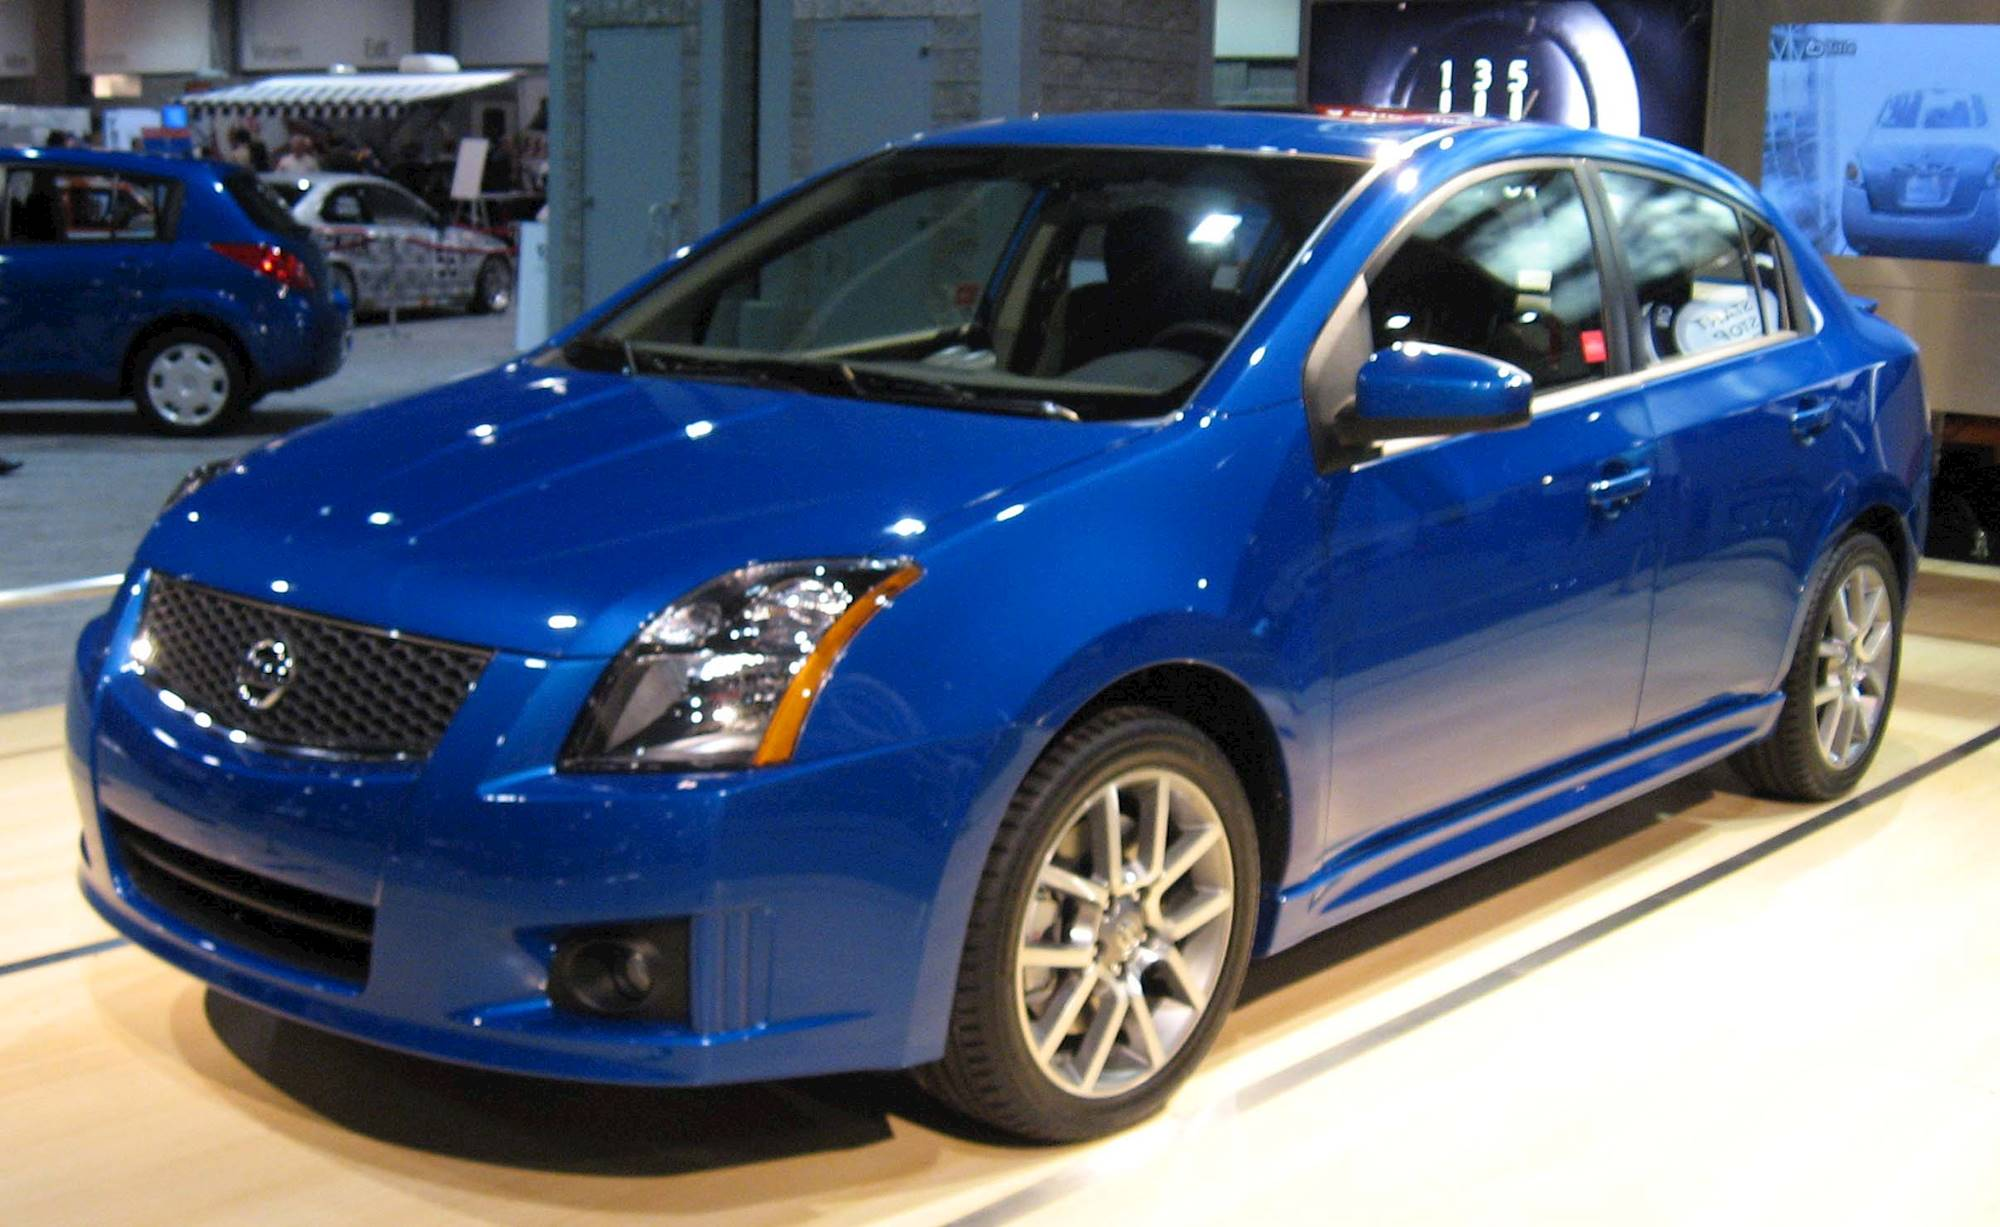 2008 Nissan Sentra Se R Spec V Sedan 2 5l Manual